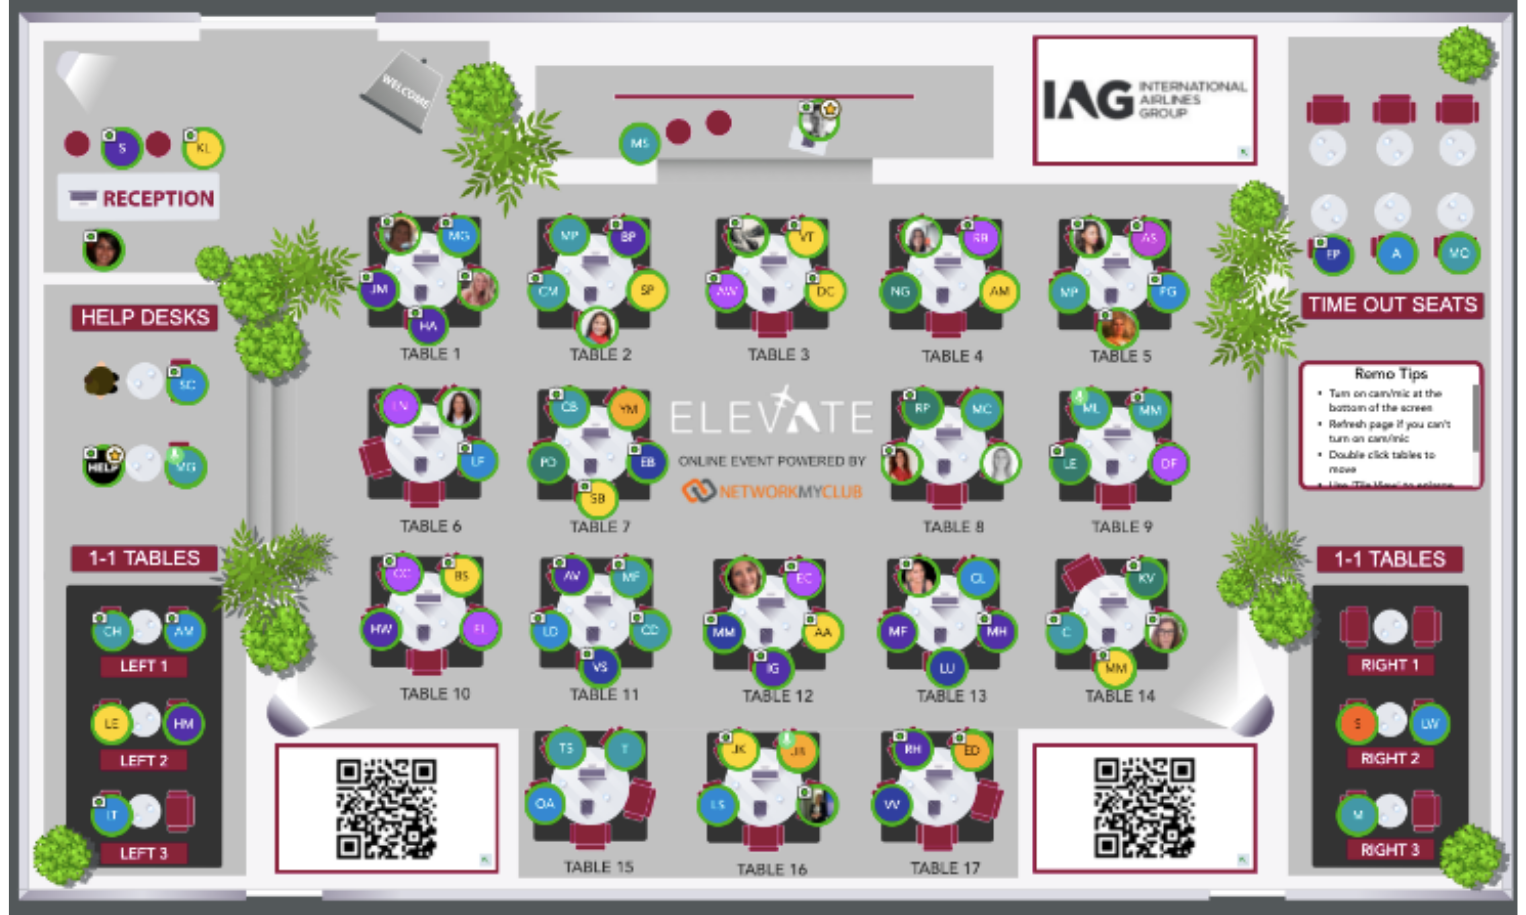 IAG: The Take Off Event Floor Plan